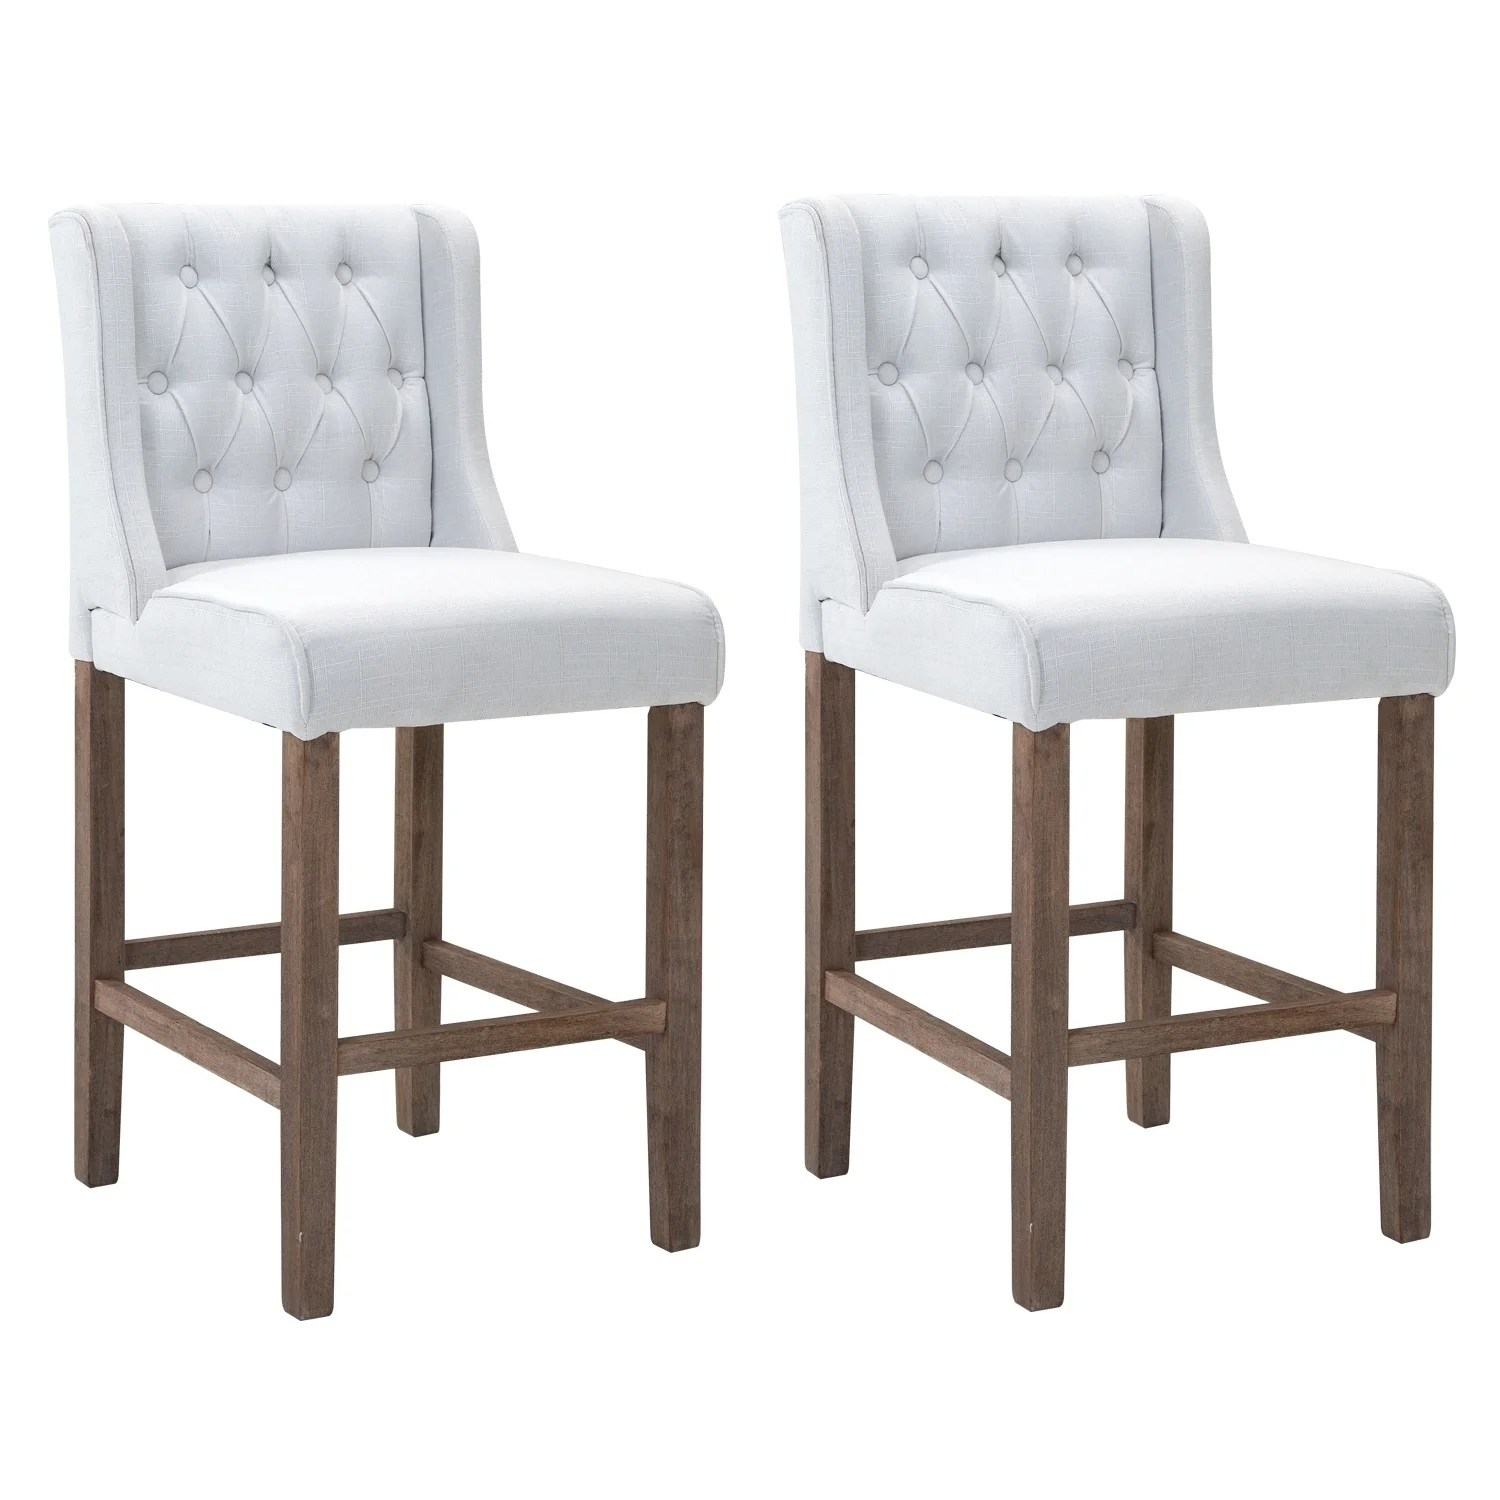 Fabric Counter Height Bar Stools Homcom Modern Bar Height Fabric Wingback Dining Chairs With Tufted Buttons Cream White Set Of 2 Chairs